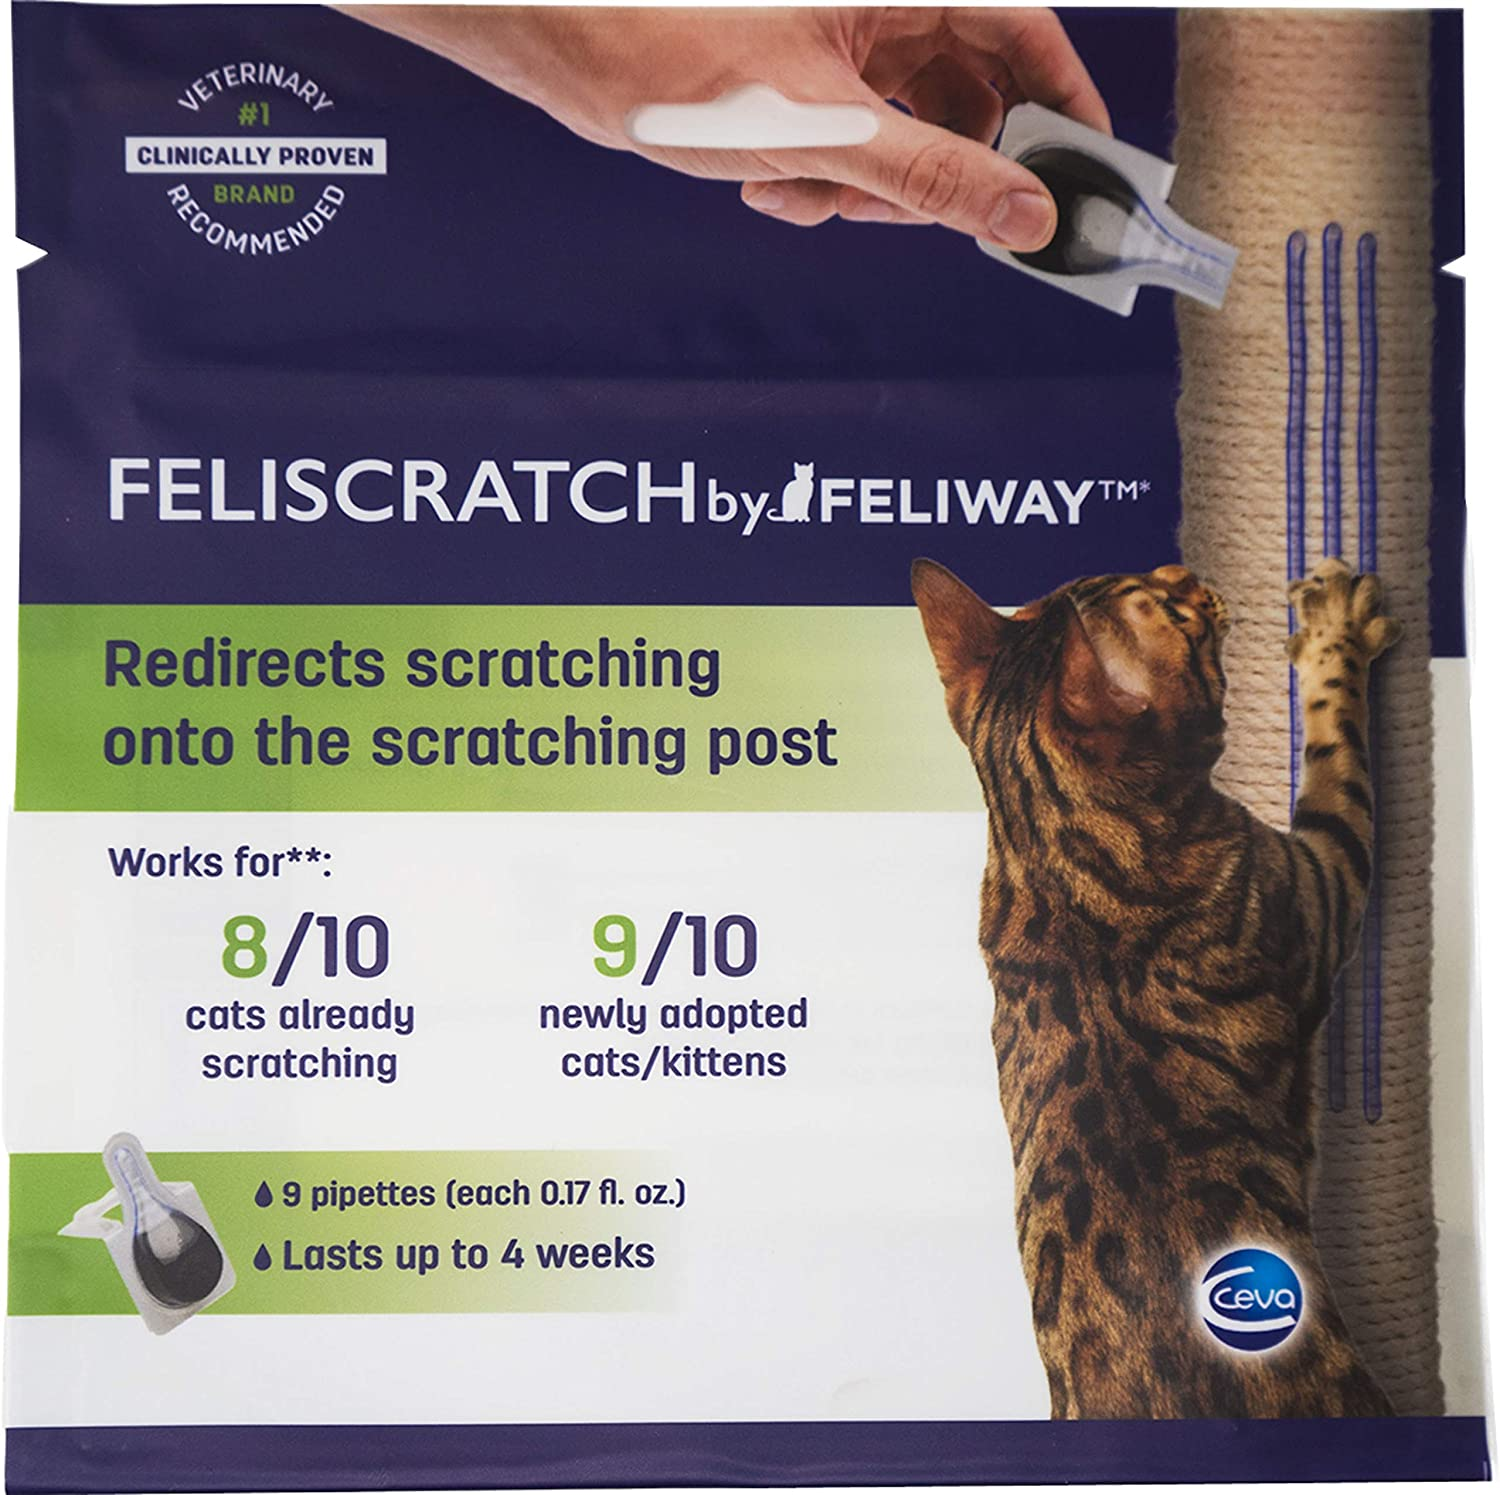 Feliscratch By Feliway Cat Scratch Attractant For Scratching Post Tree Prevents Cat From Scratching Furniture 9 Pipettes Pet Supplies